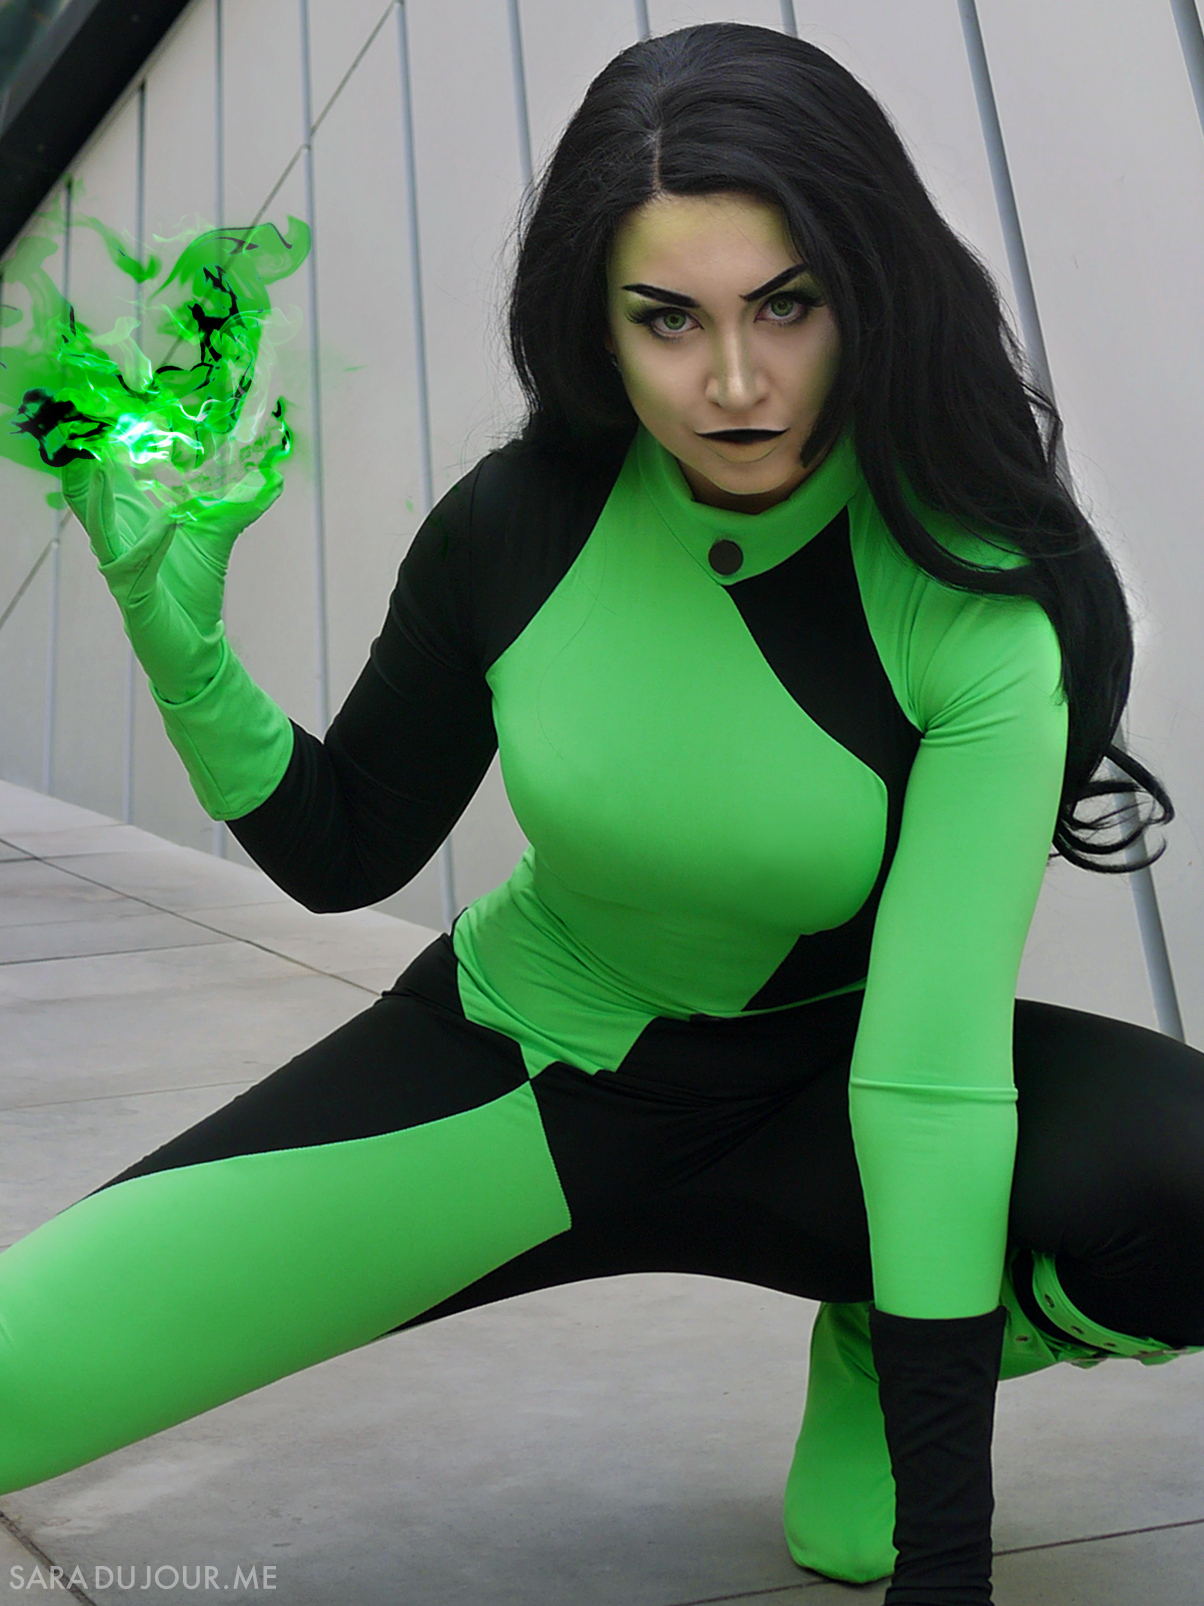 Shego Cosplay + Costume - Kim Possible | Sara du Jour